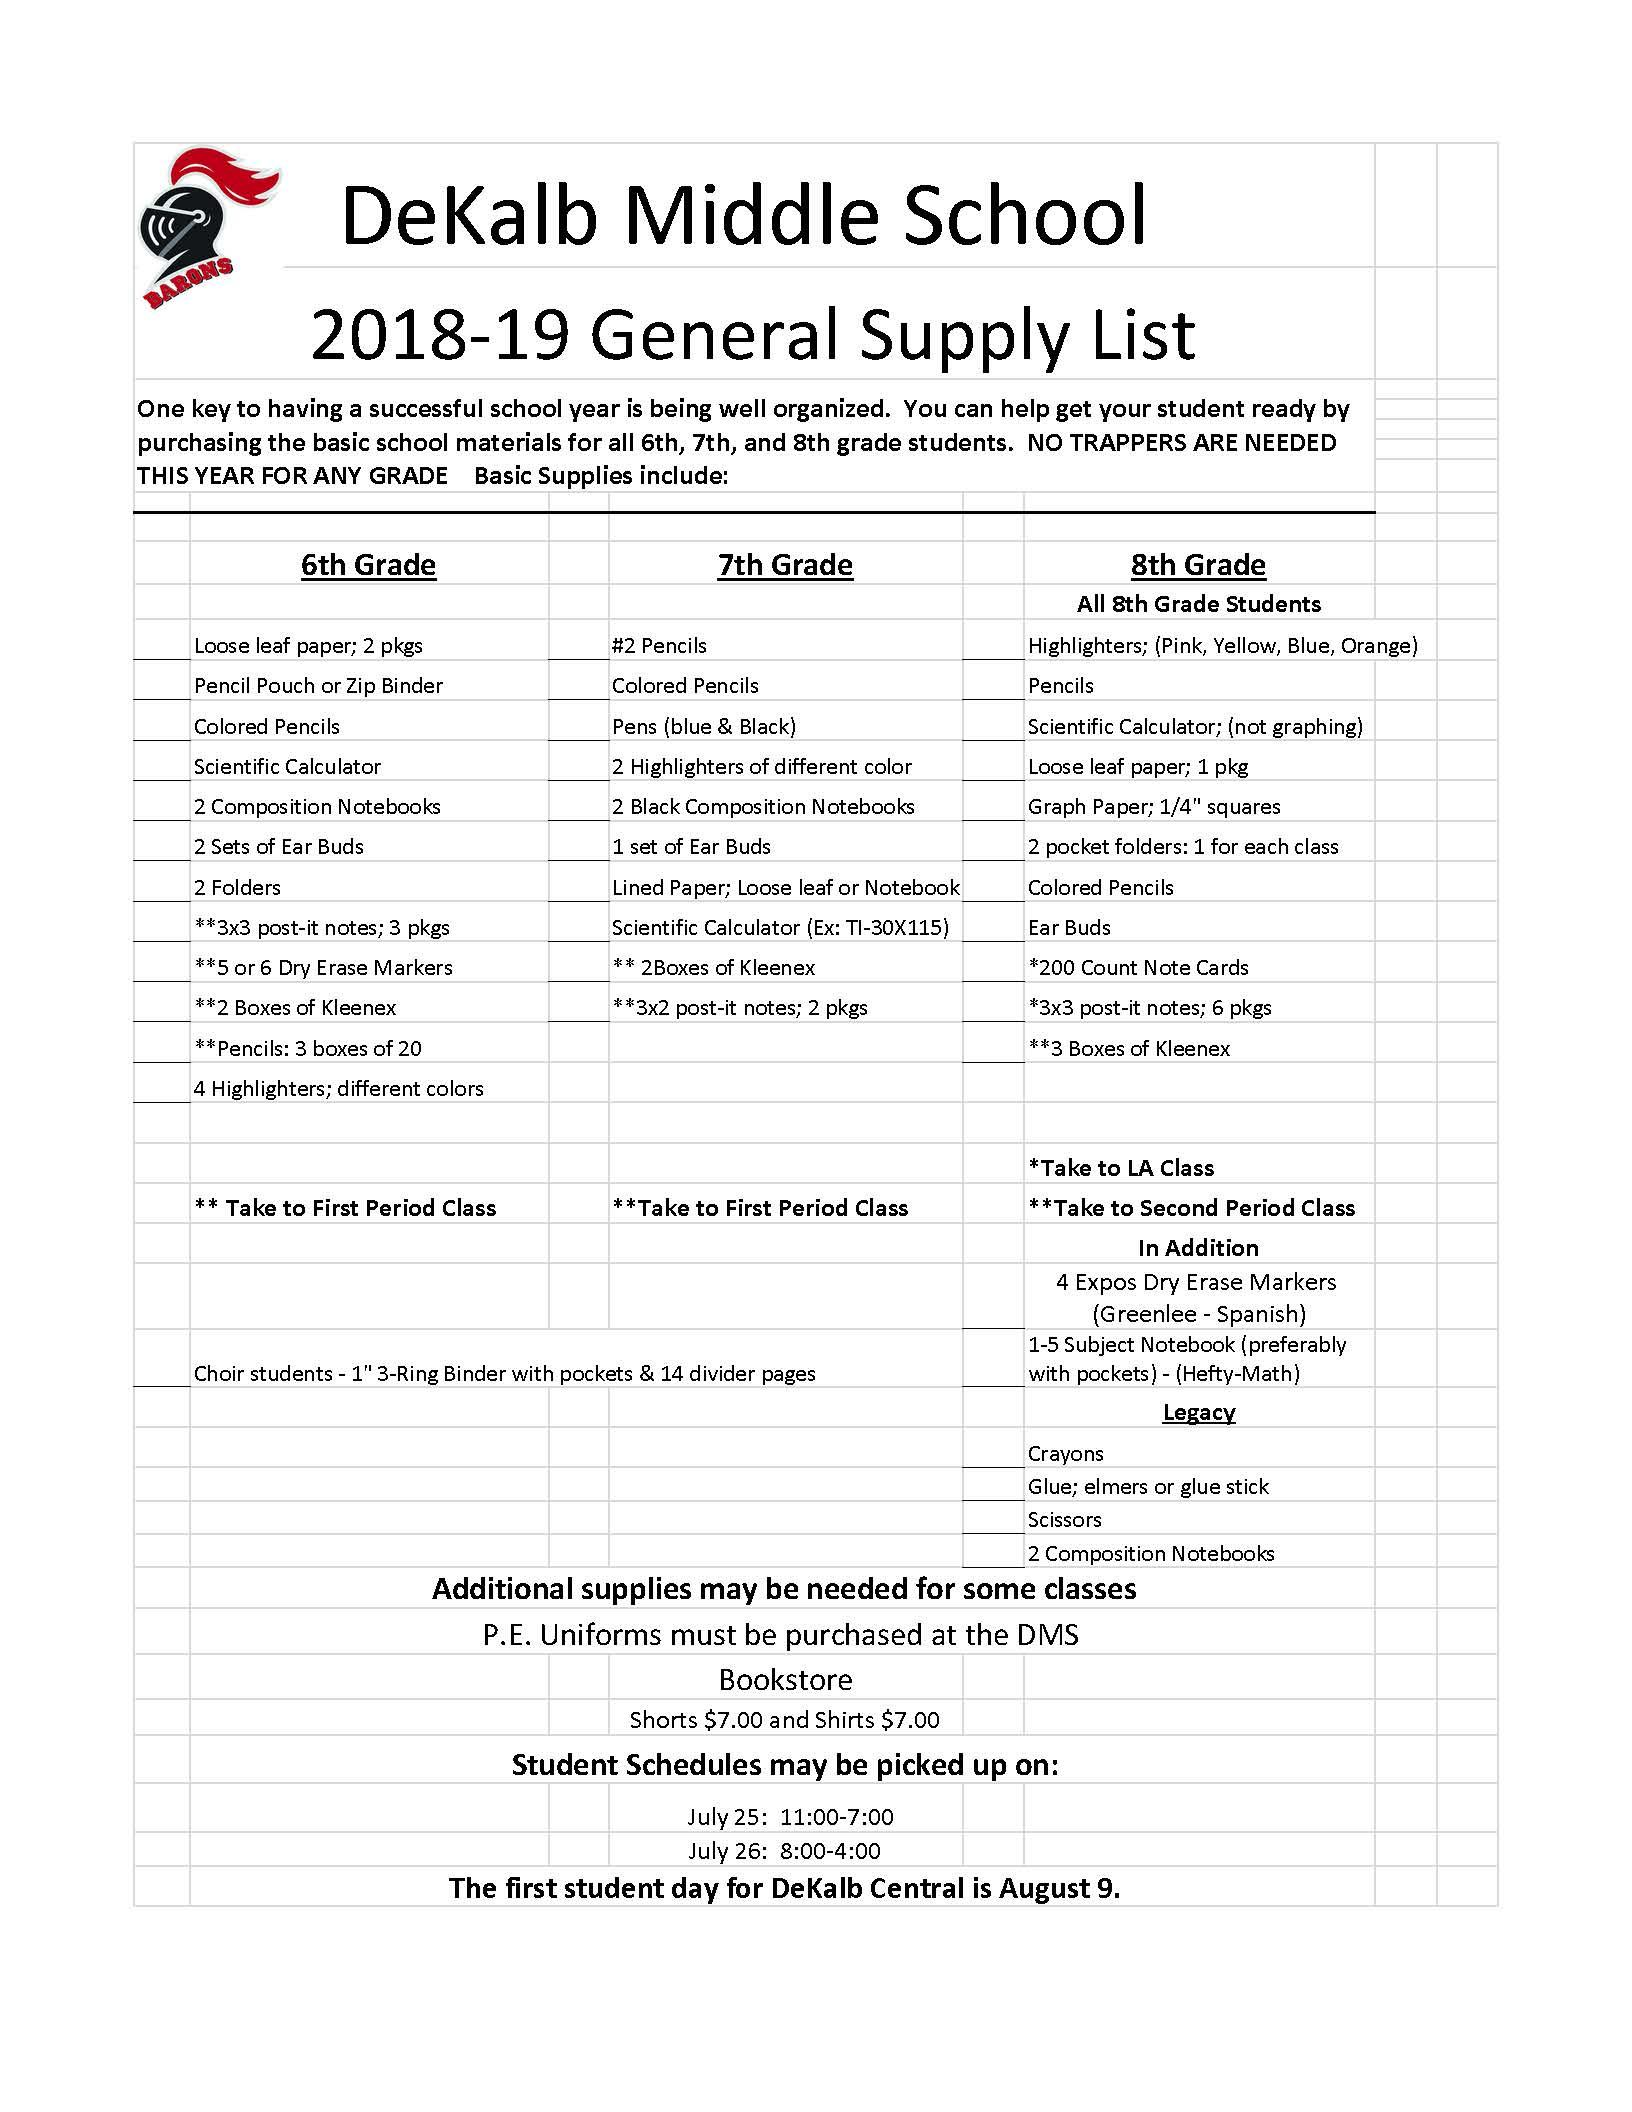 DMS Supplies Lists